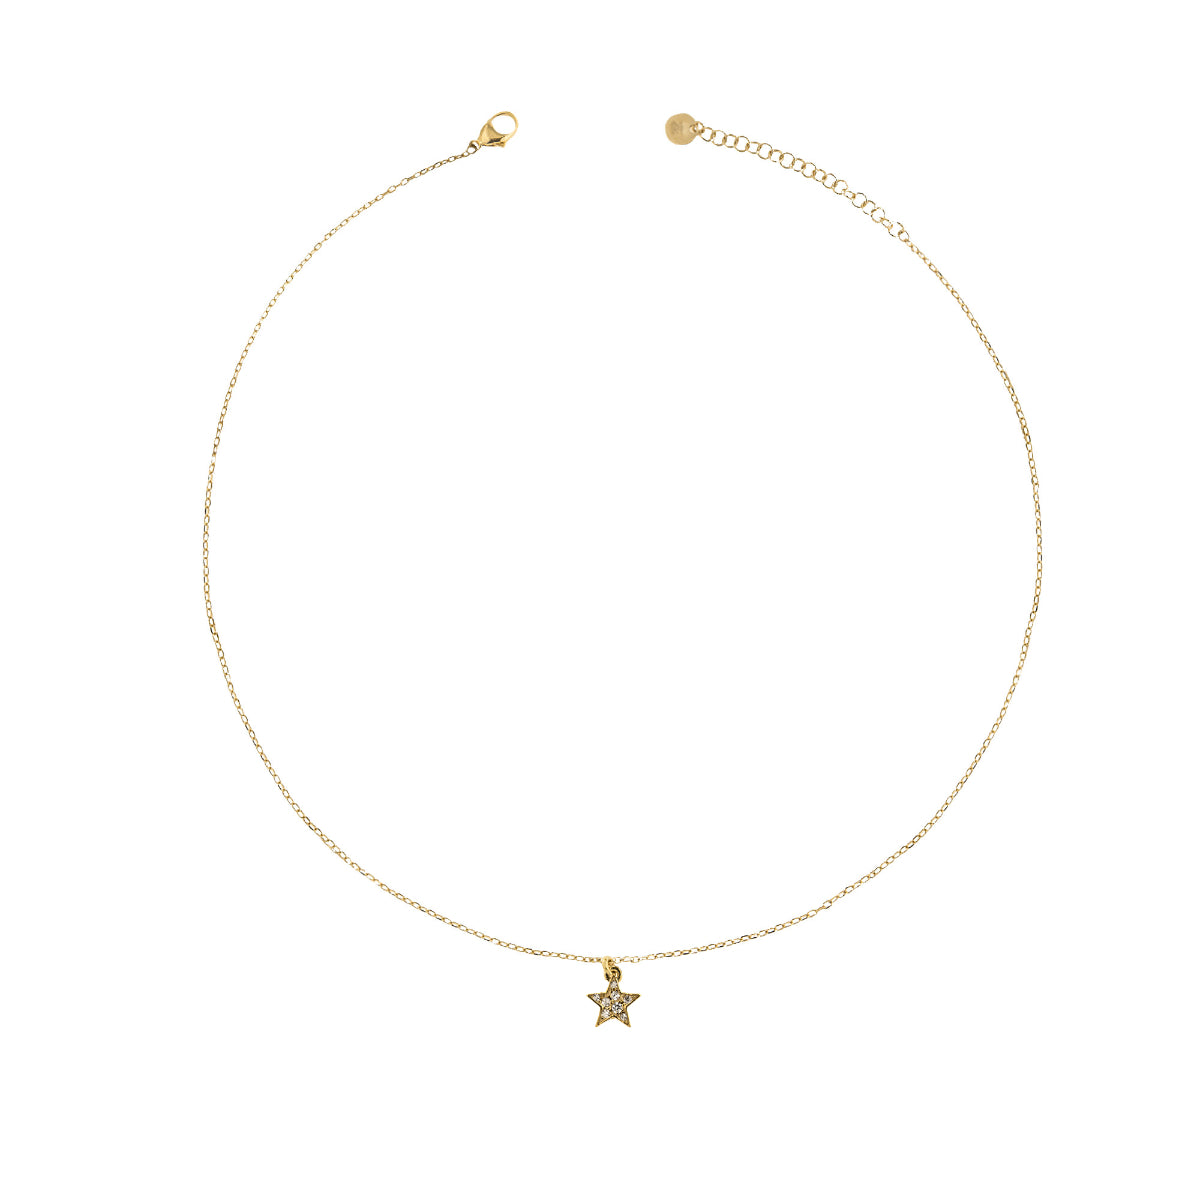 Chokers - Choker chain and star zircons - 1 | Rue des Mille